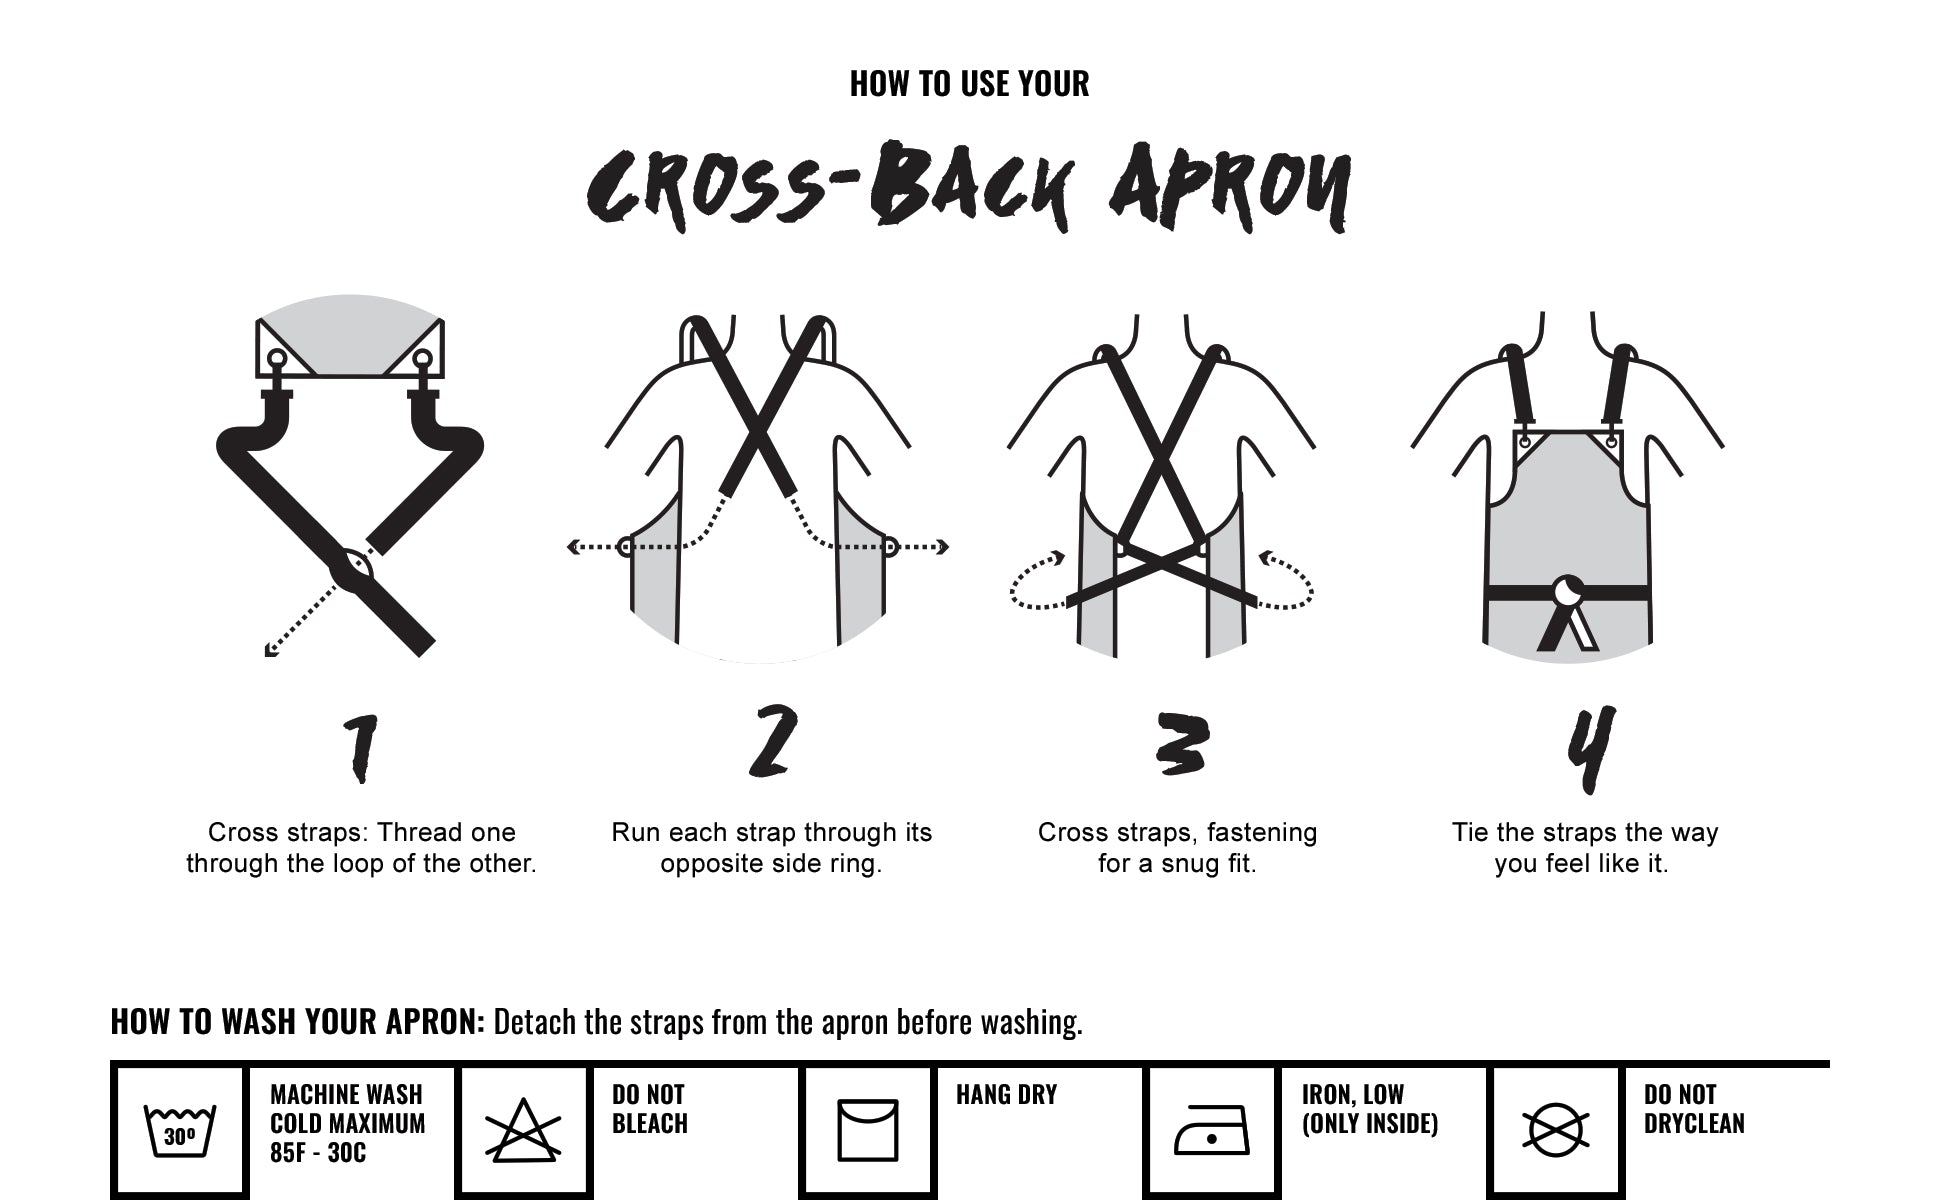 Under NY Sky Cross-Back Twill Apron - How to Wash your Apron Chart